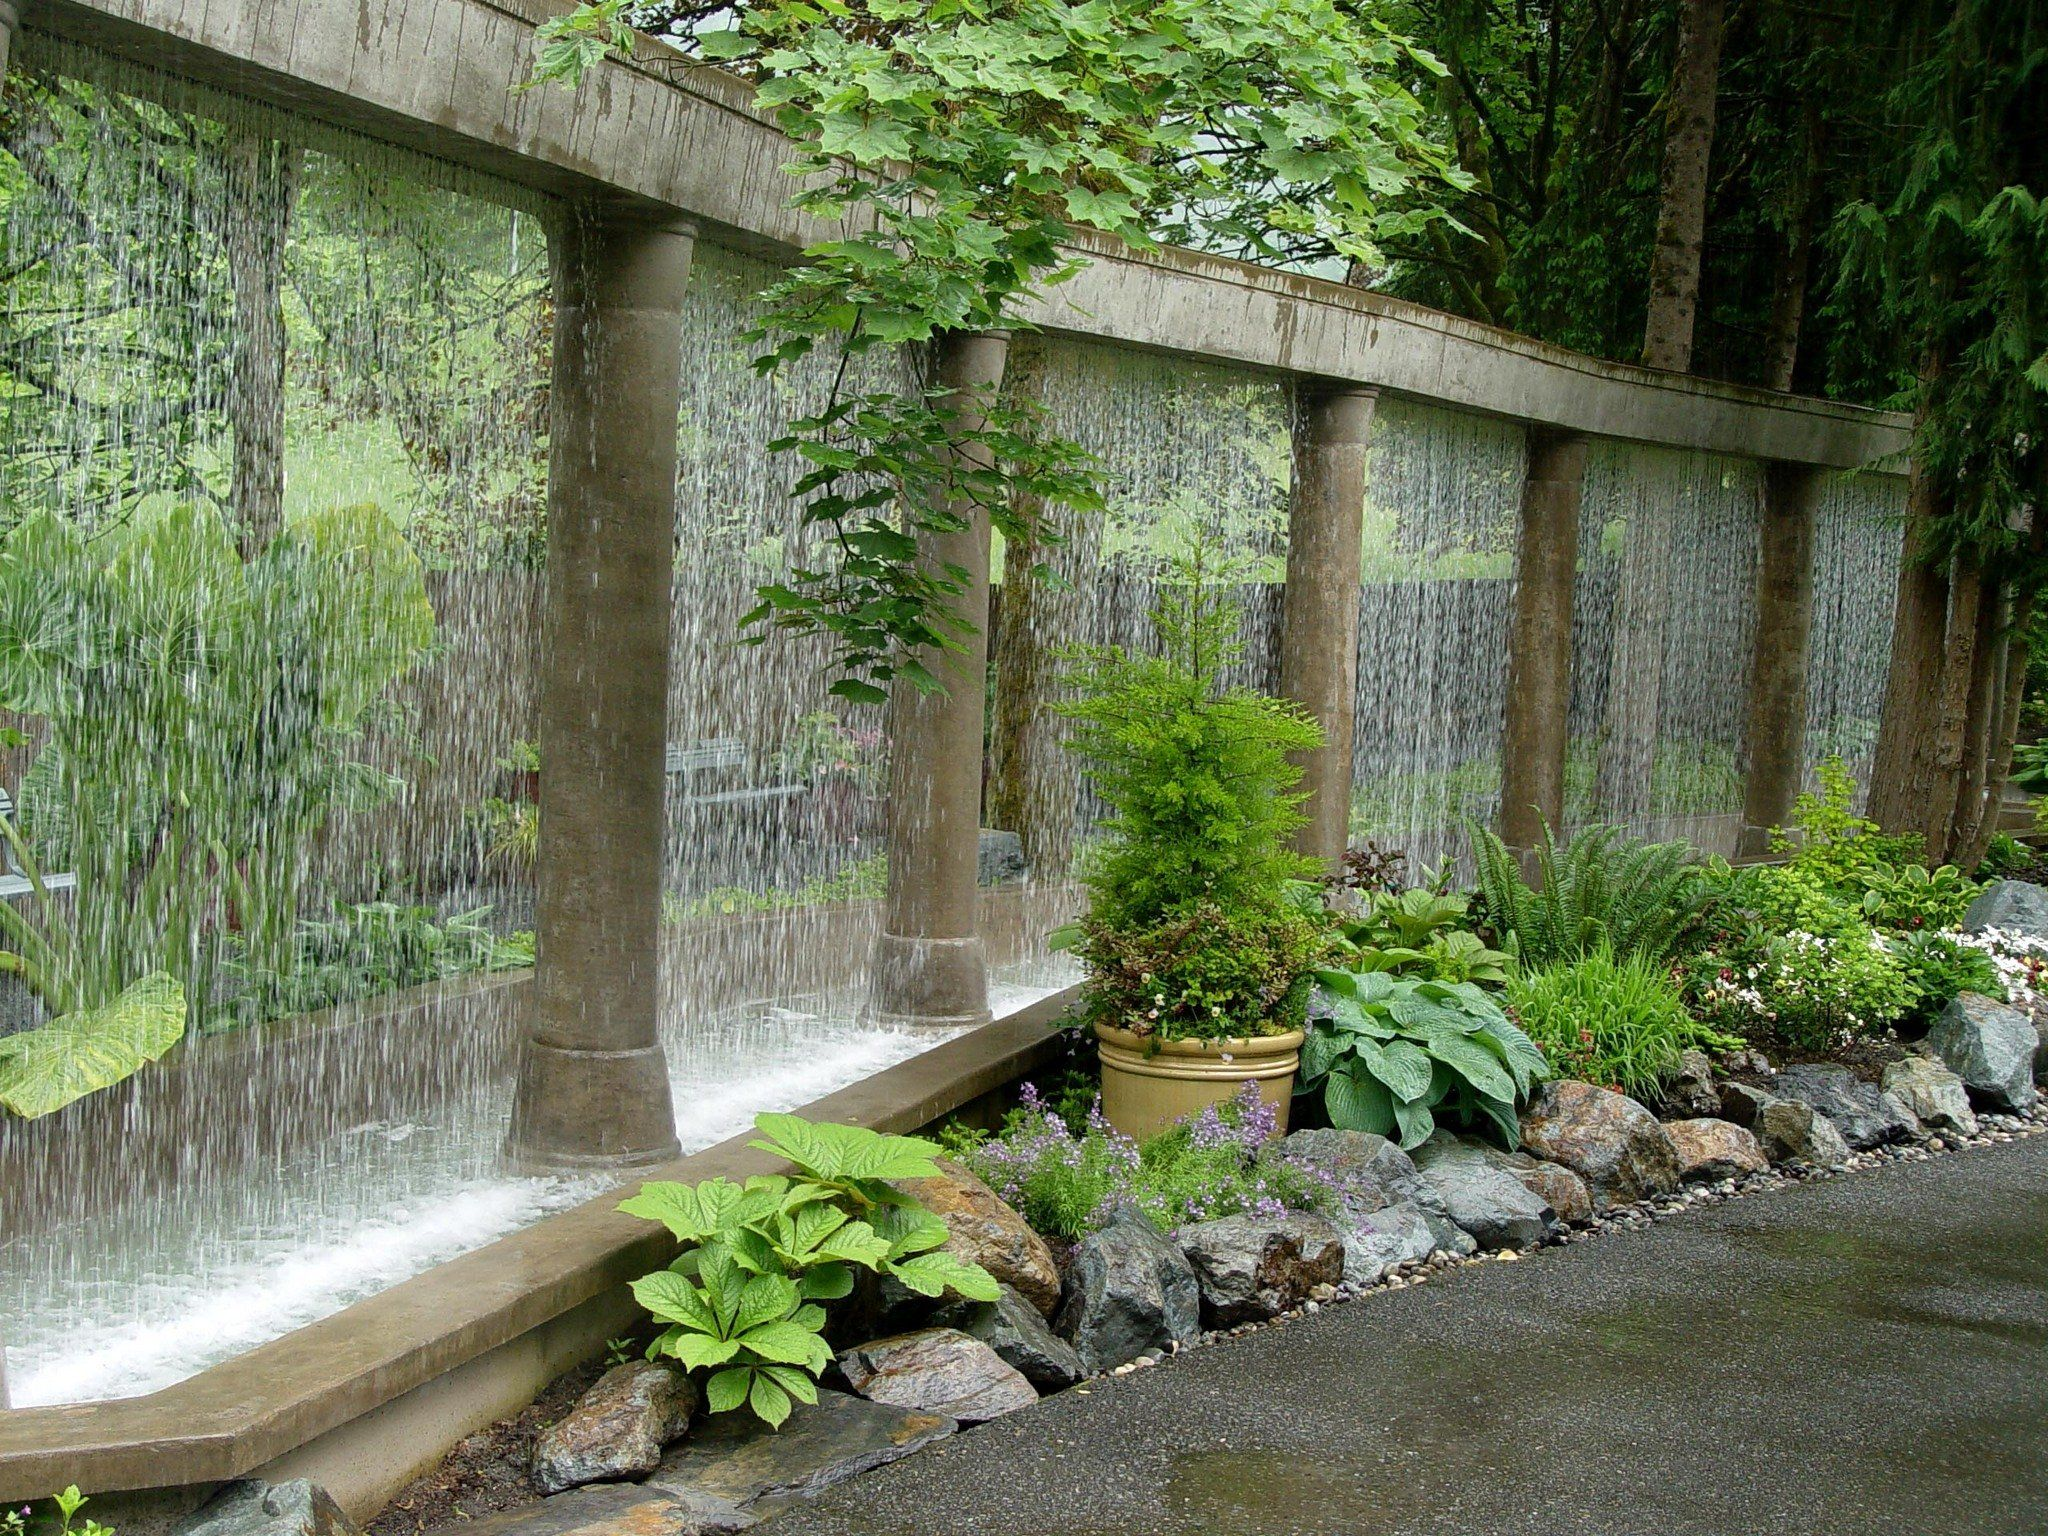 Waterfall garden plant they will come garden design for Water garden ideas